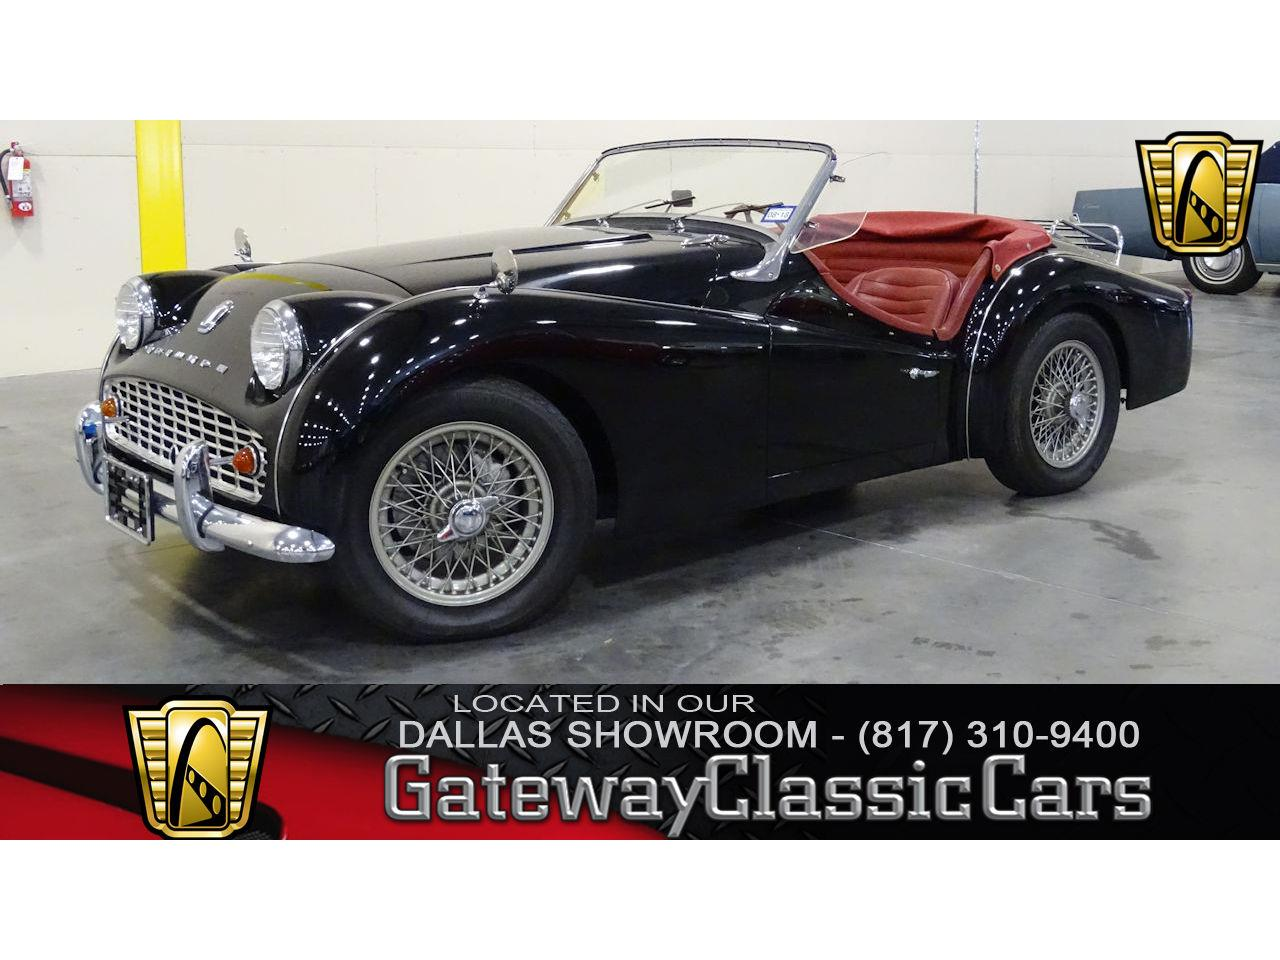 For Sale: 1958 Triumph TR3 in DFW Airport, Texas